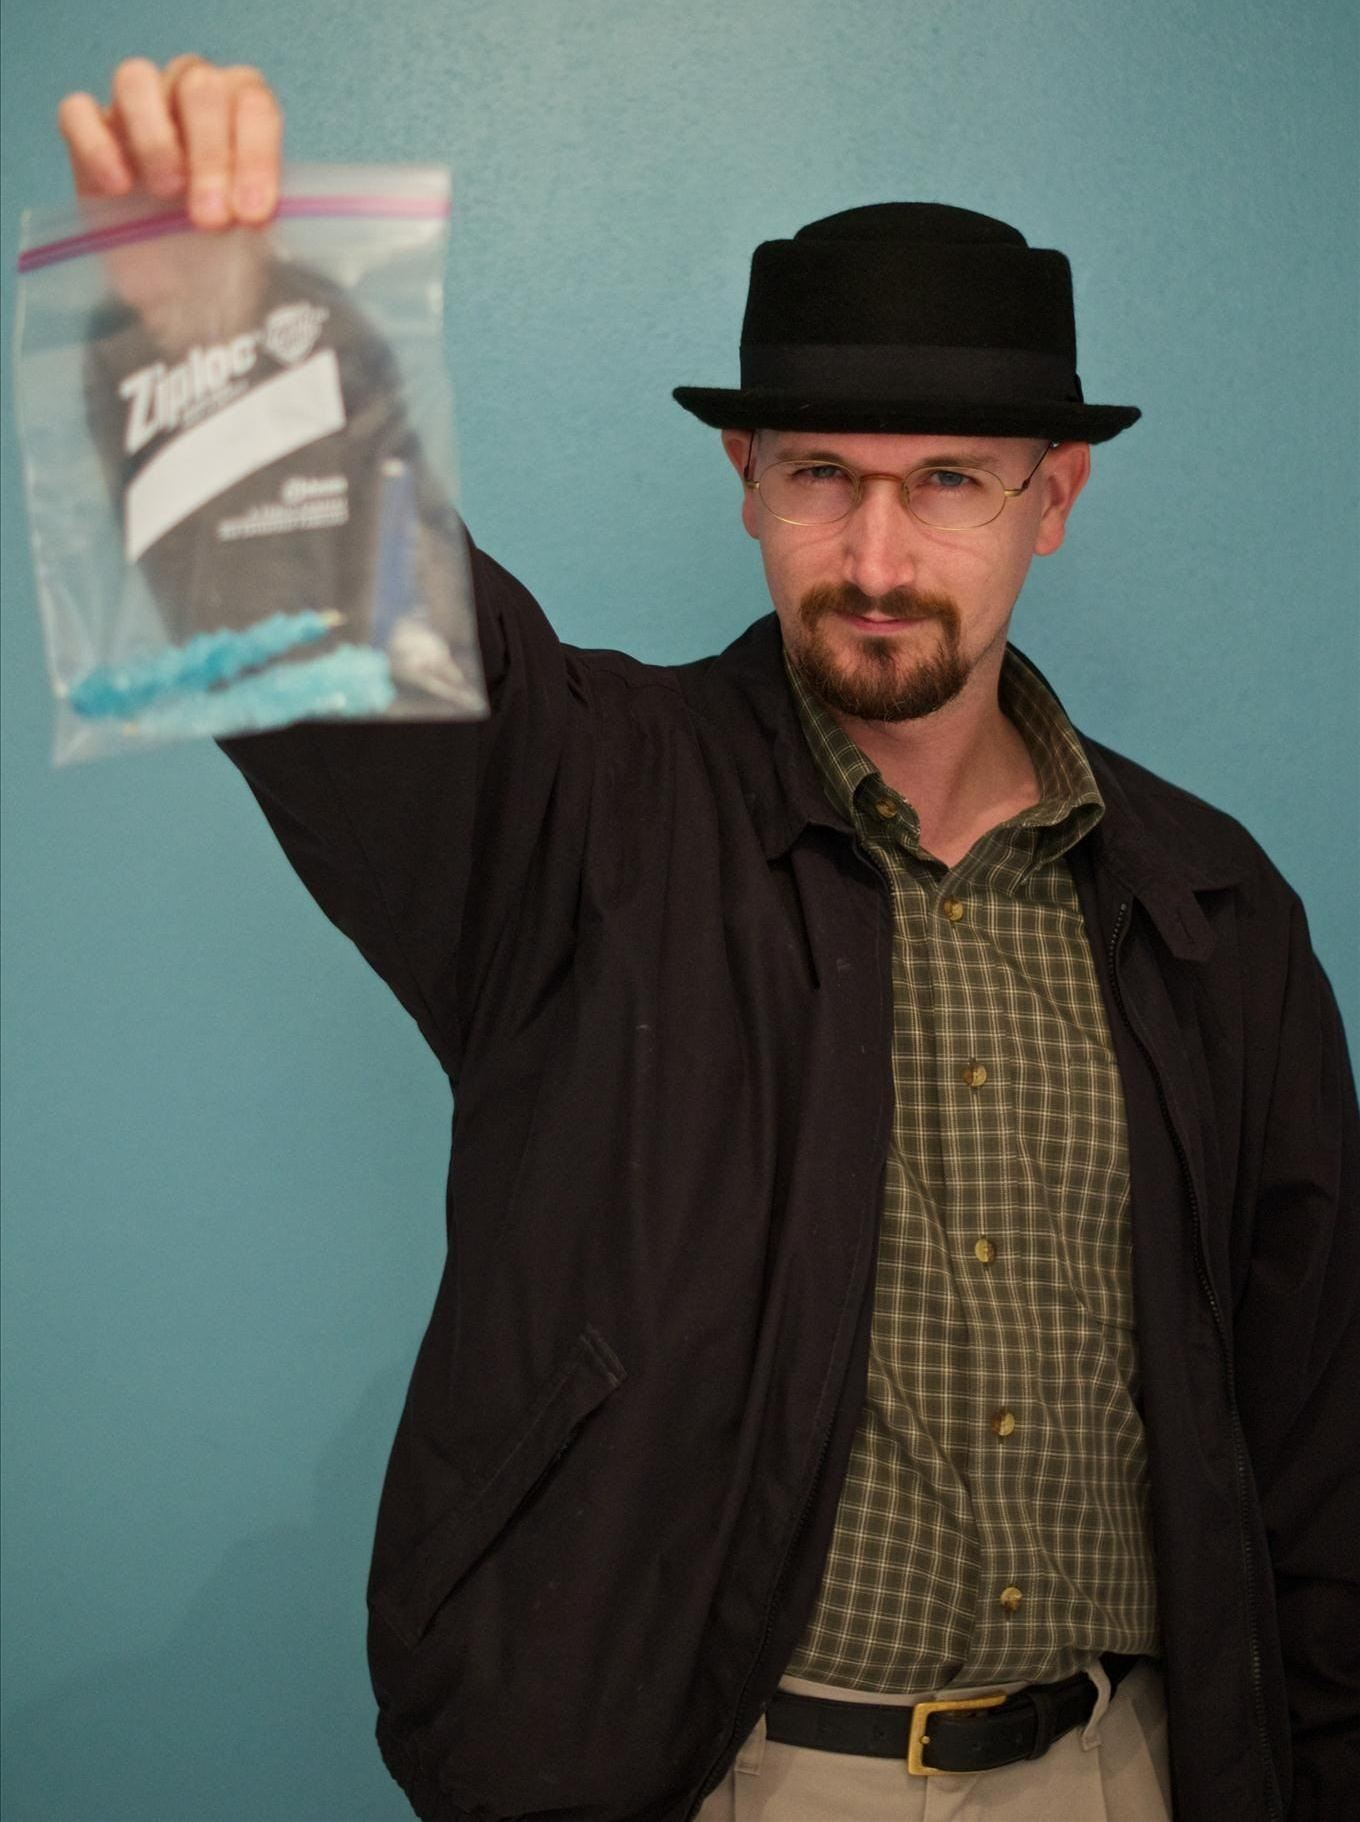 heisenberg - Halloween Costume Breaking Bad